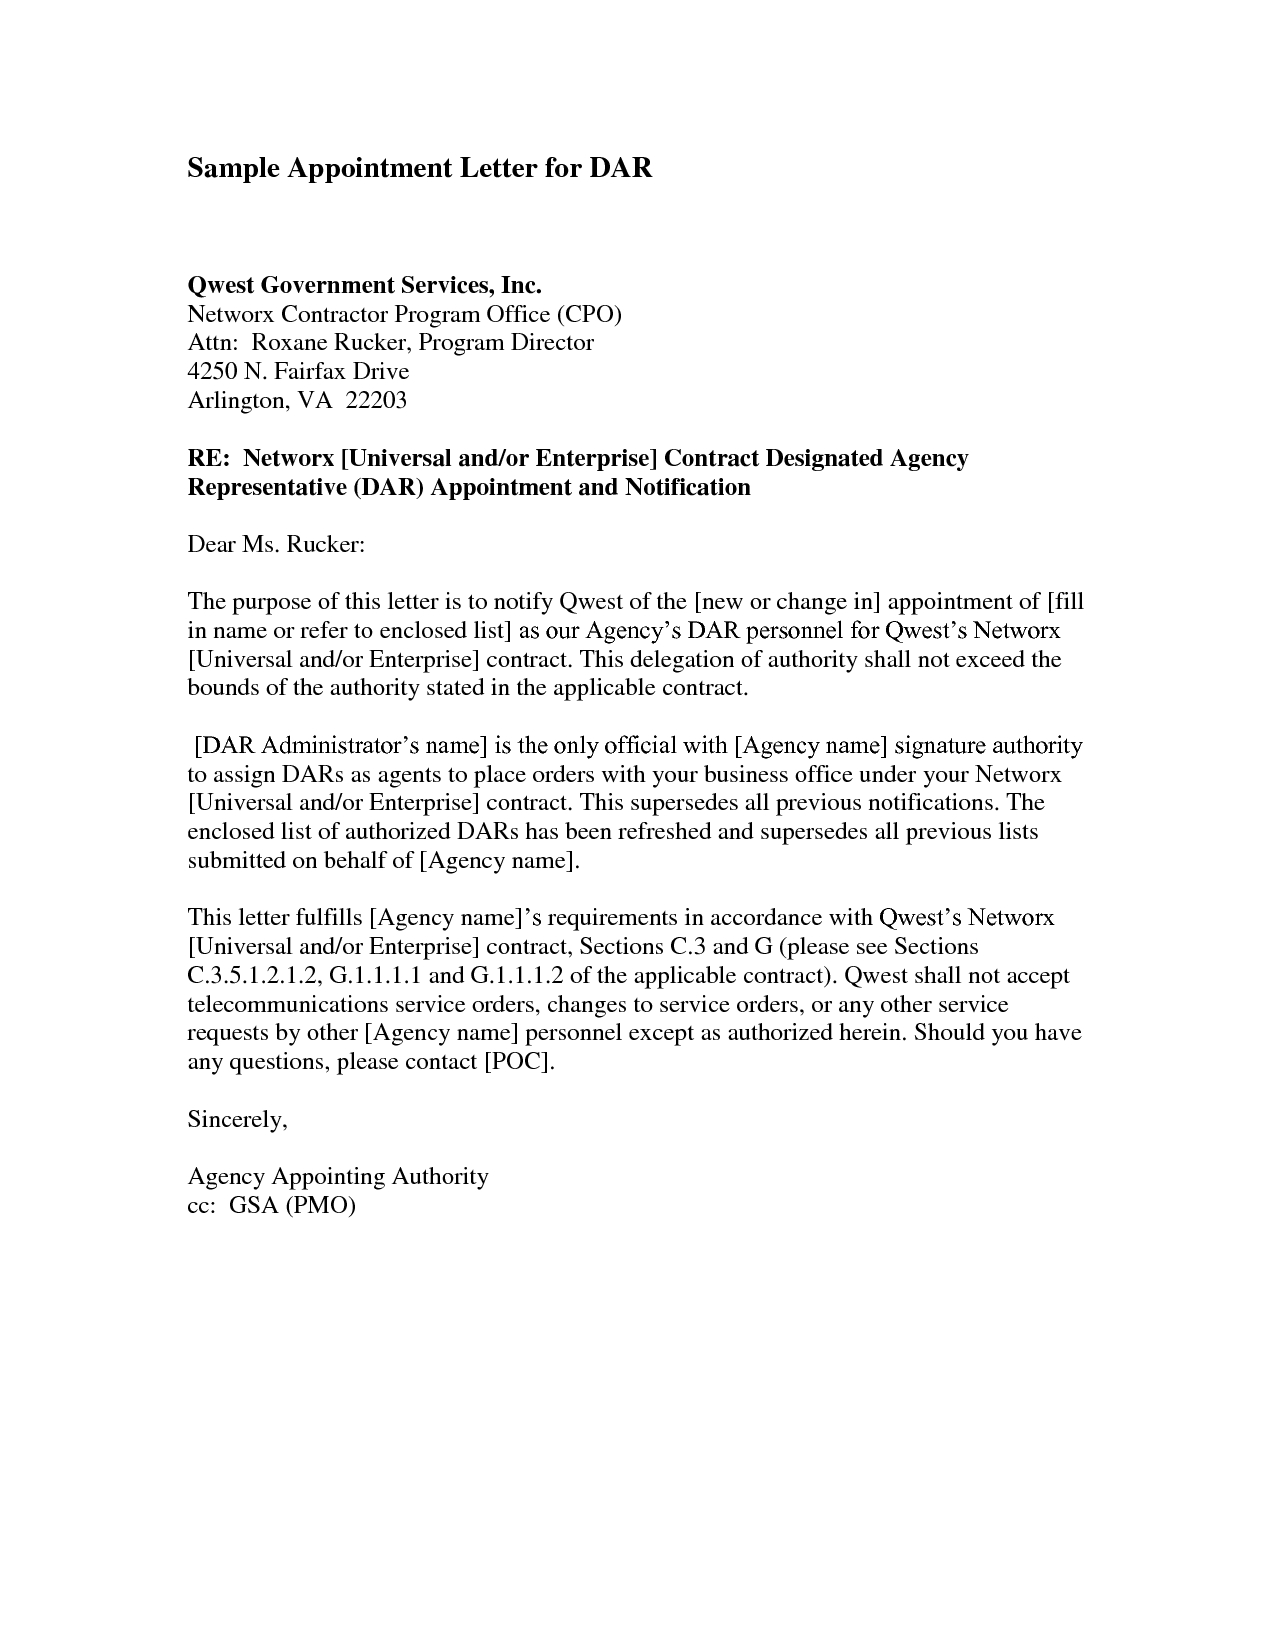 School Sponsorship Letter Template - Trustee Appointment Letter Director Trustee is Appointed or